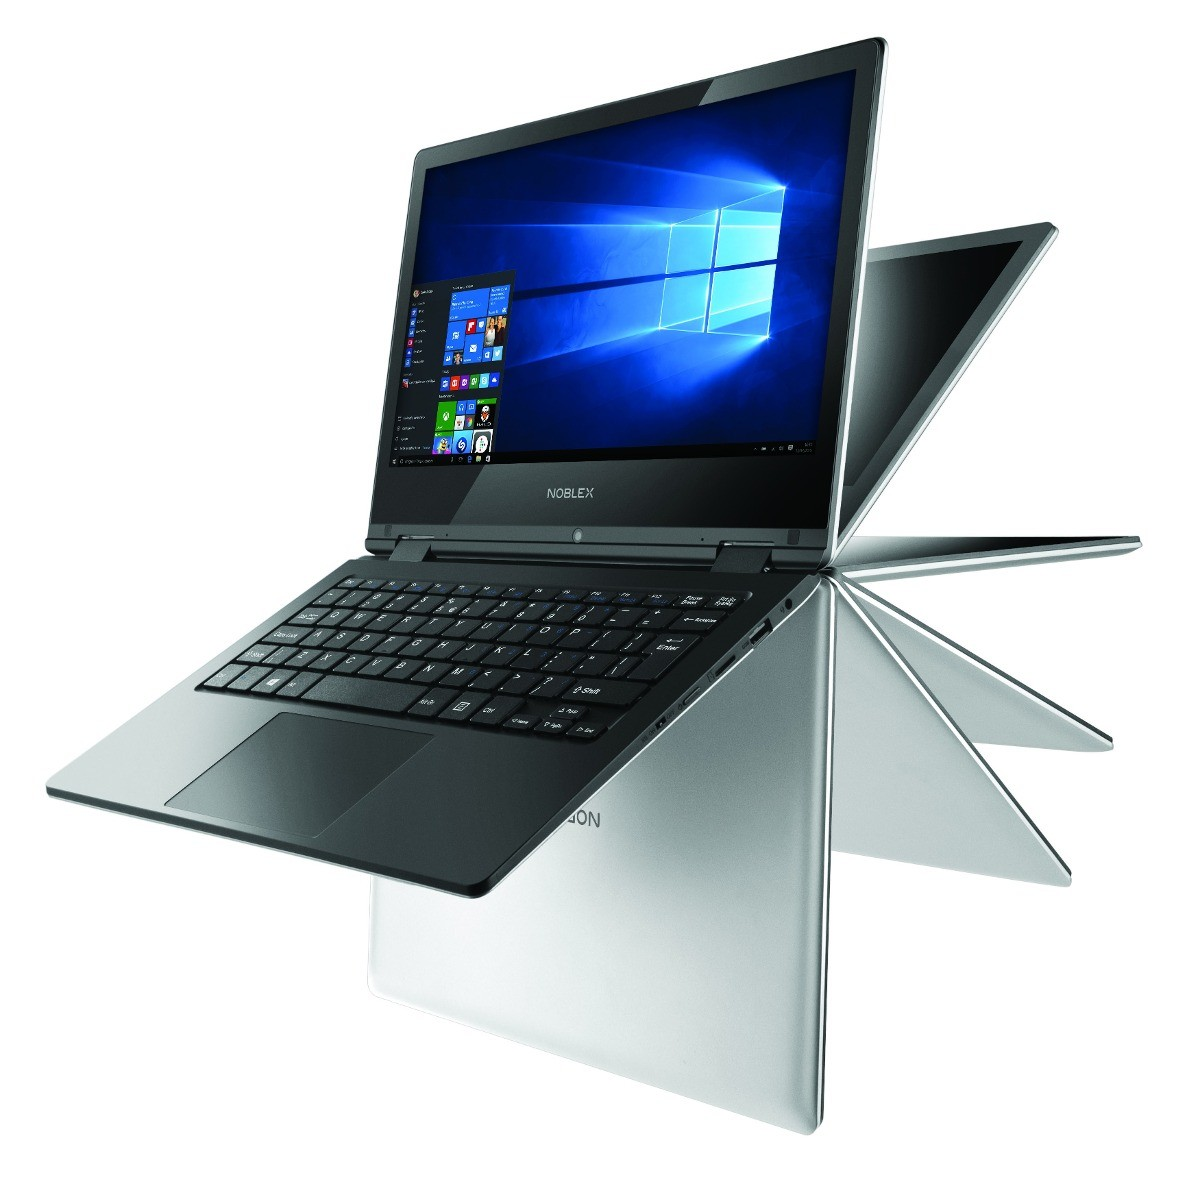 NOTEBOOK NOBLEX 360 ATOM/2GB/32GB Y11W102 11.6''